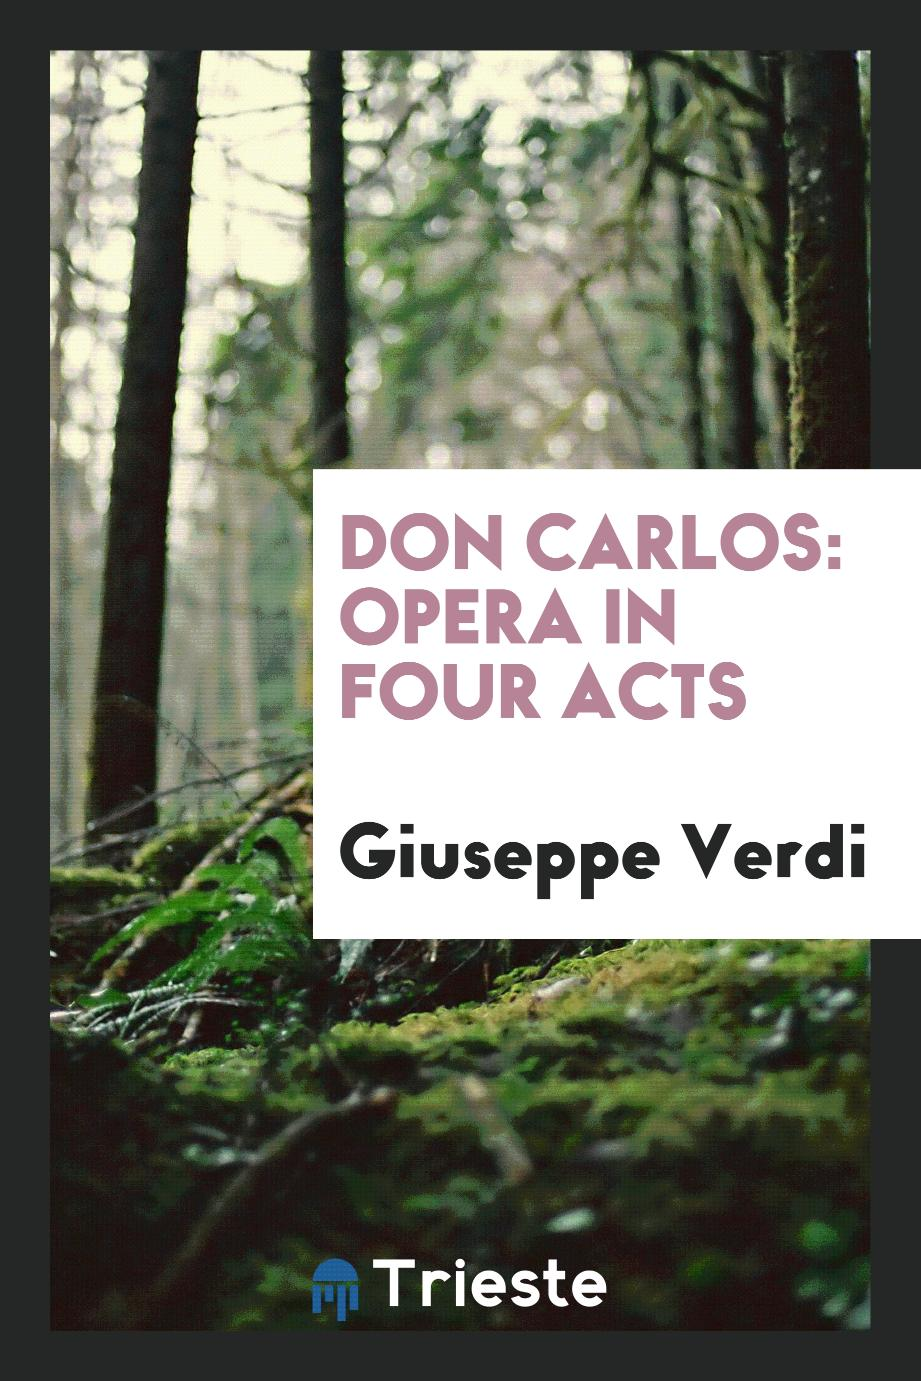 Don Carlos: Opera in Four Acts